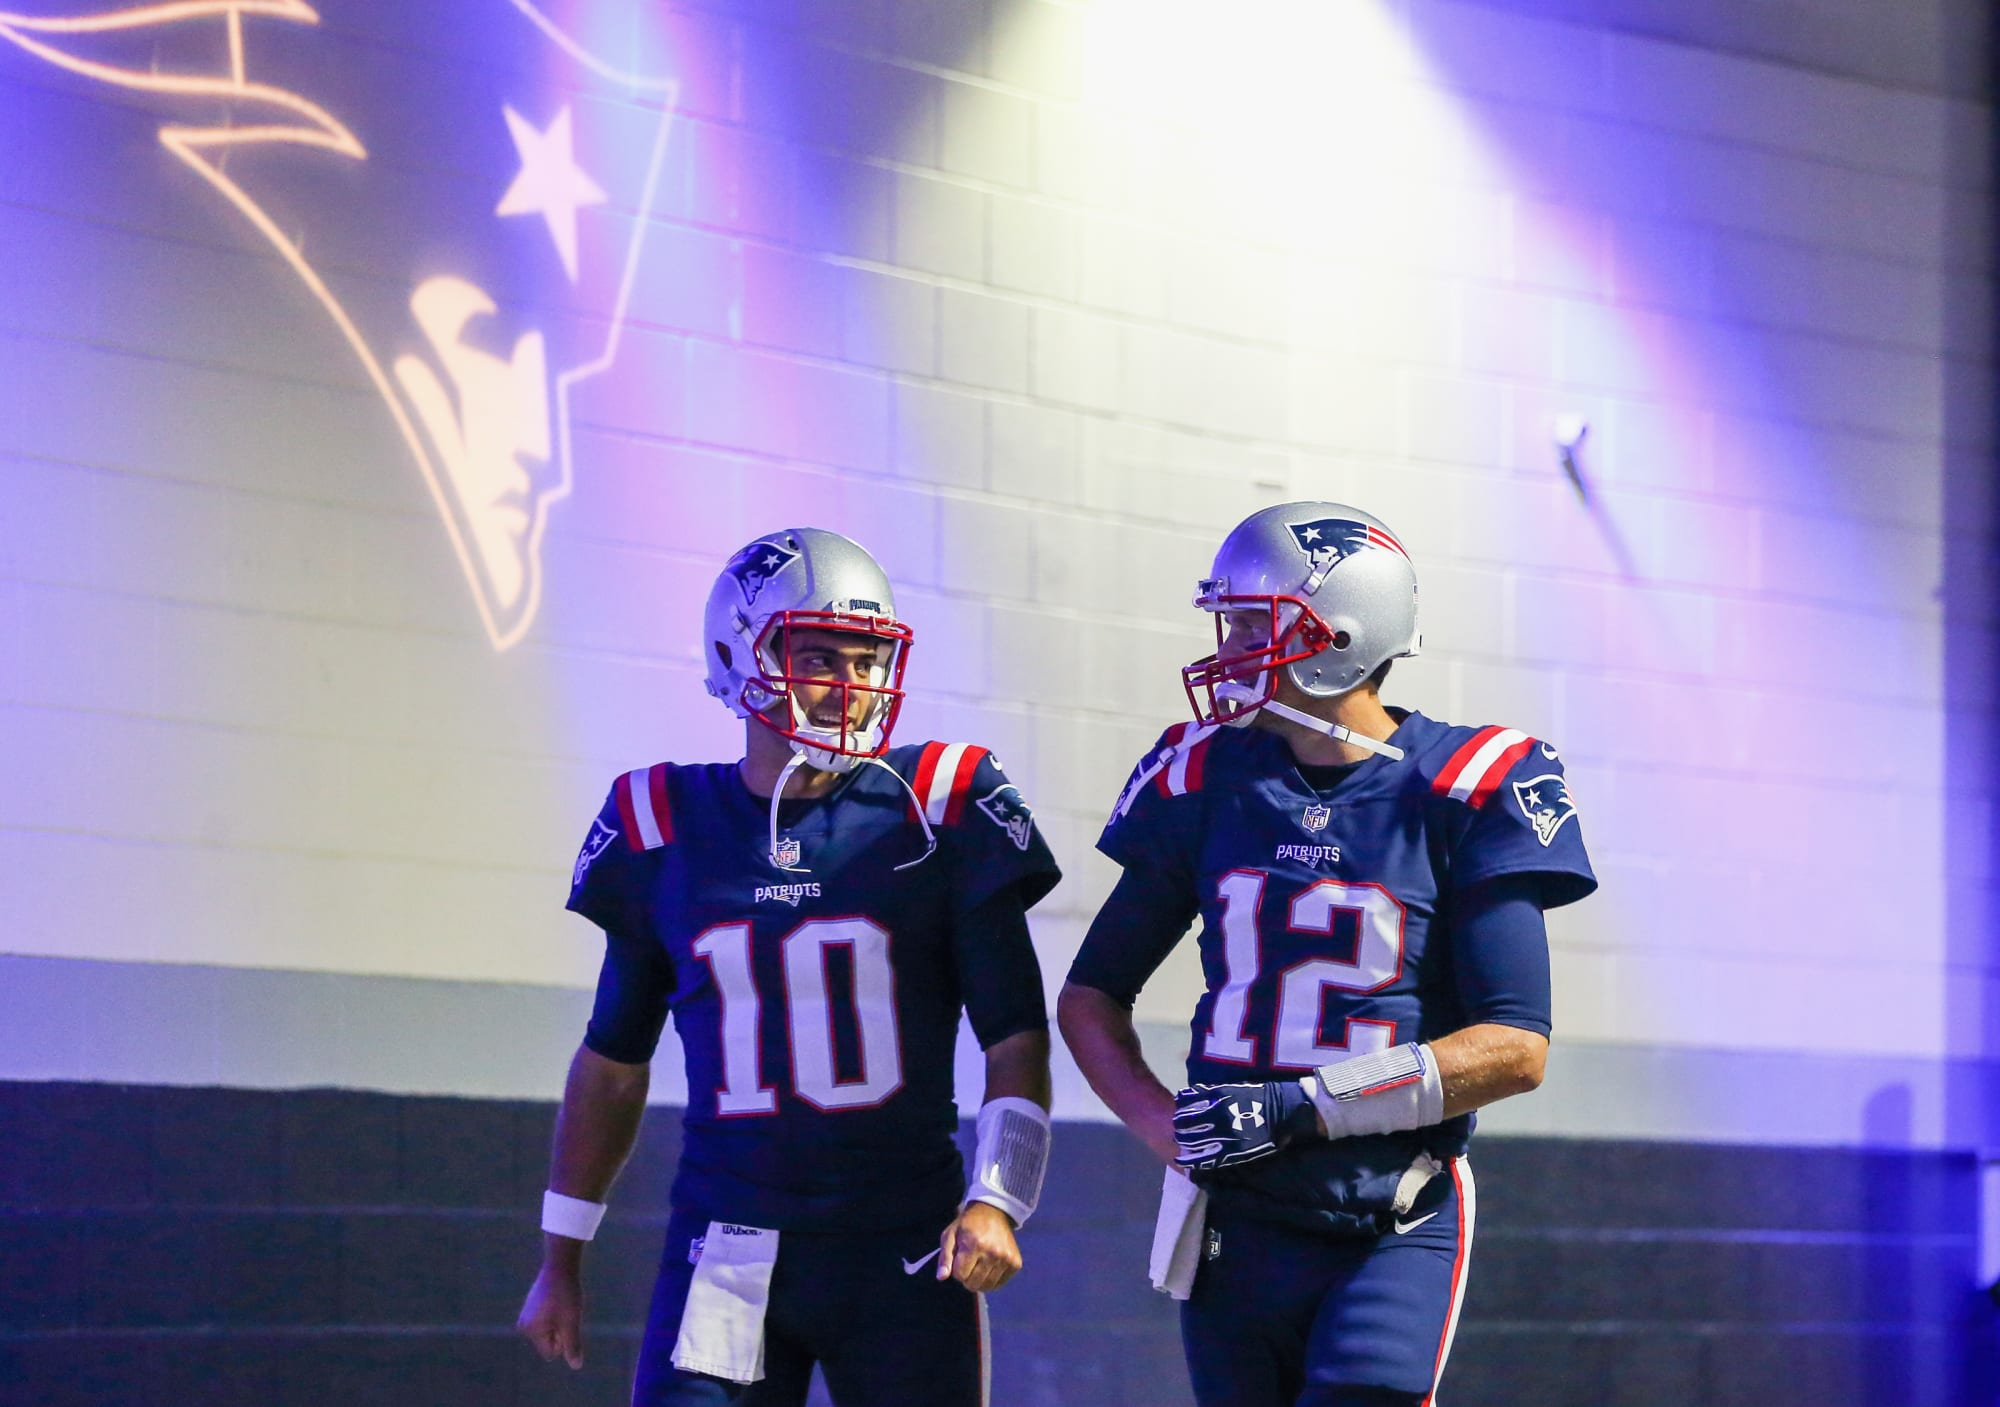 Does anyone still think Bill Belichick would have preferred to keep Jimmy Garoppolo?